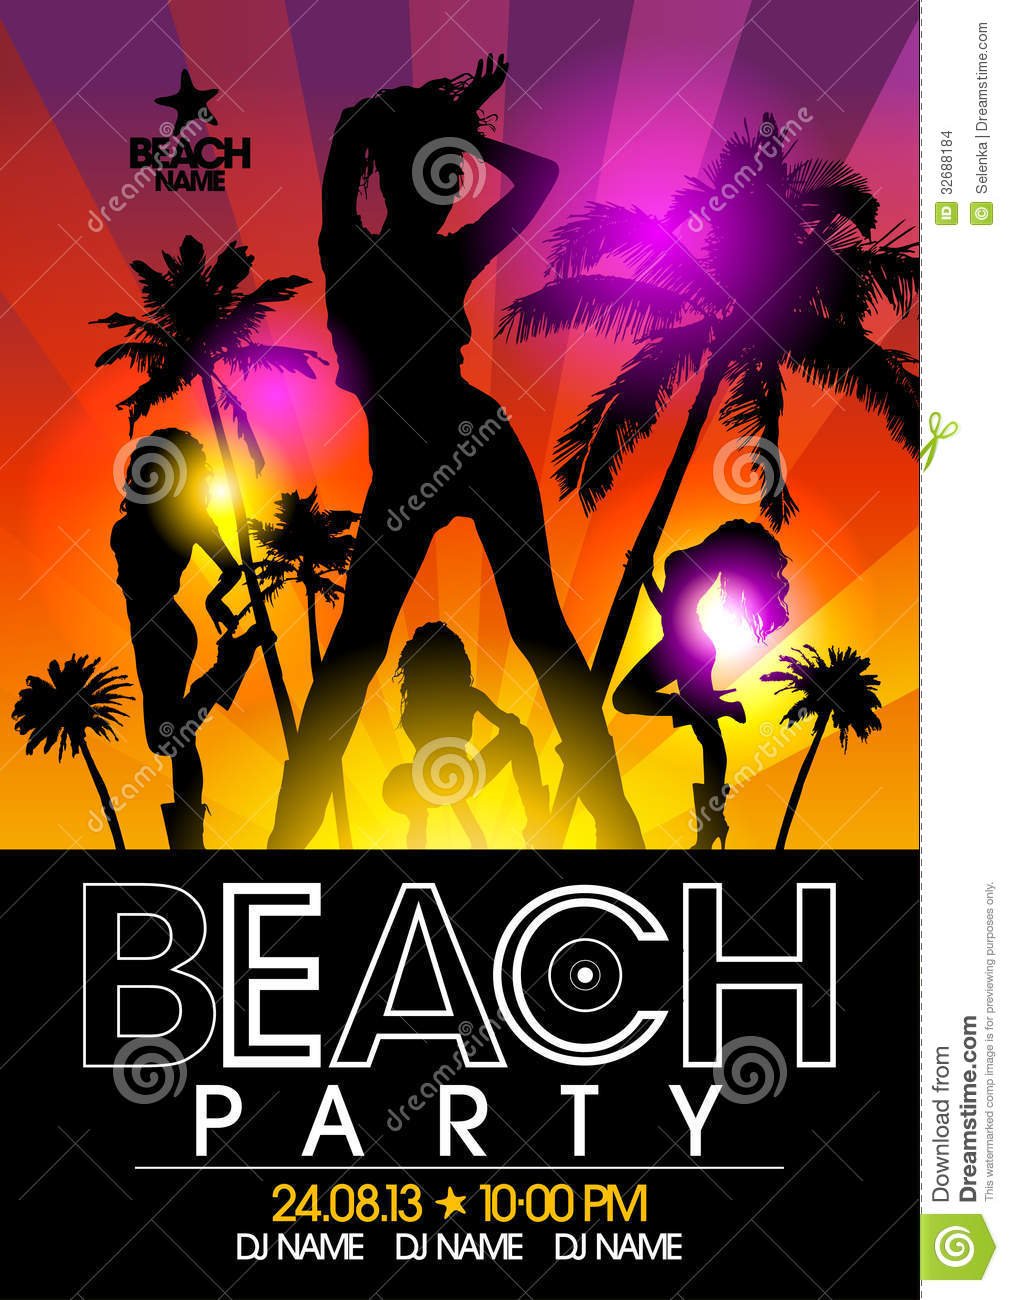 Beach Party Design Template Stock Images - Image: 32688184